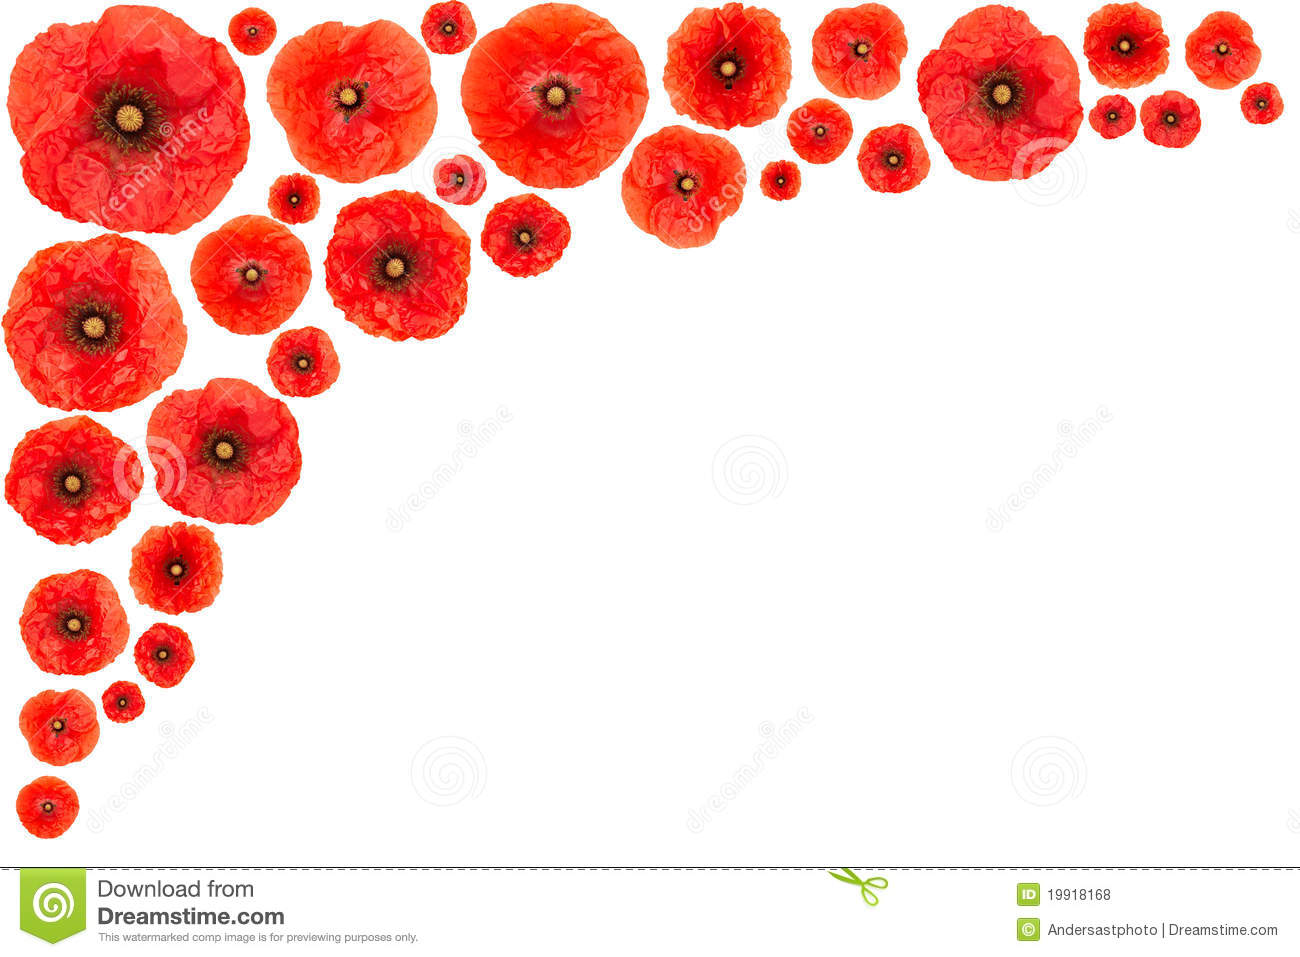 The Best Free Poppy Clipart Images Download From 50 Free Cliparts